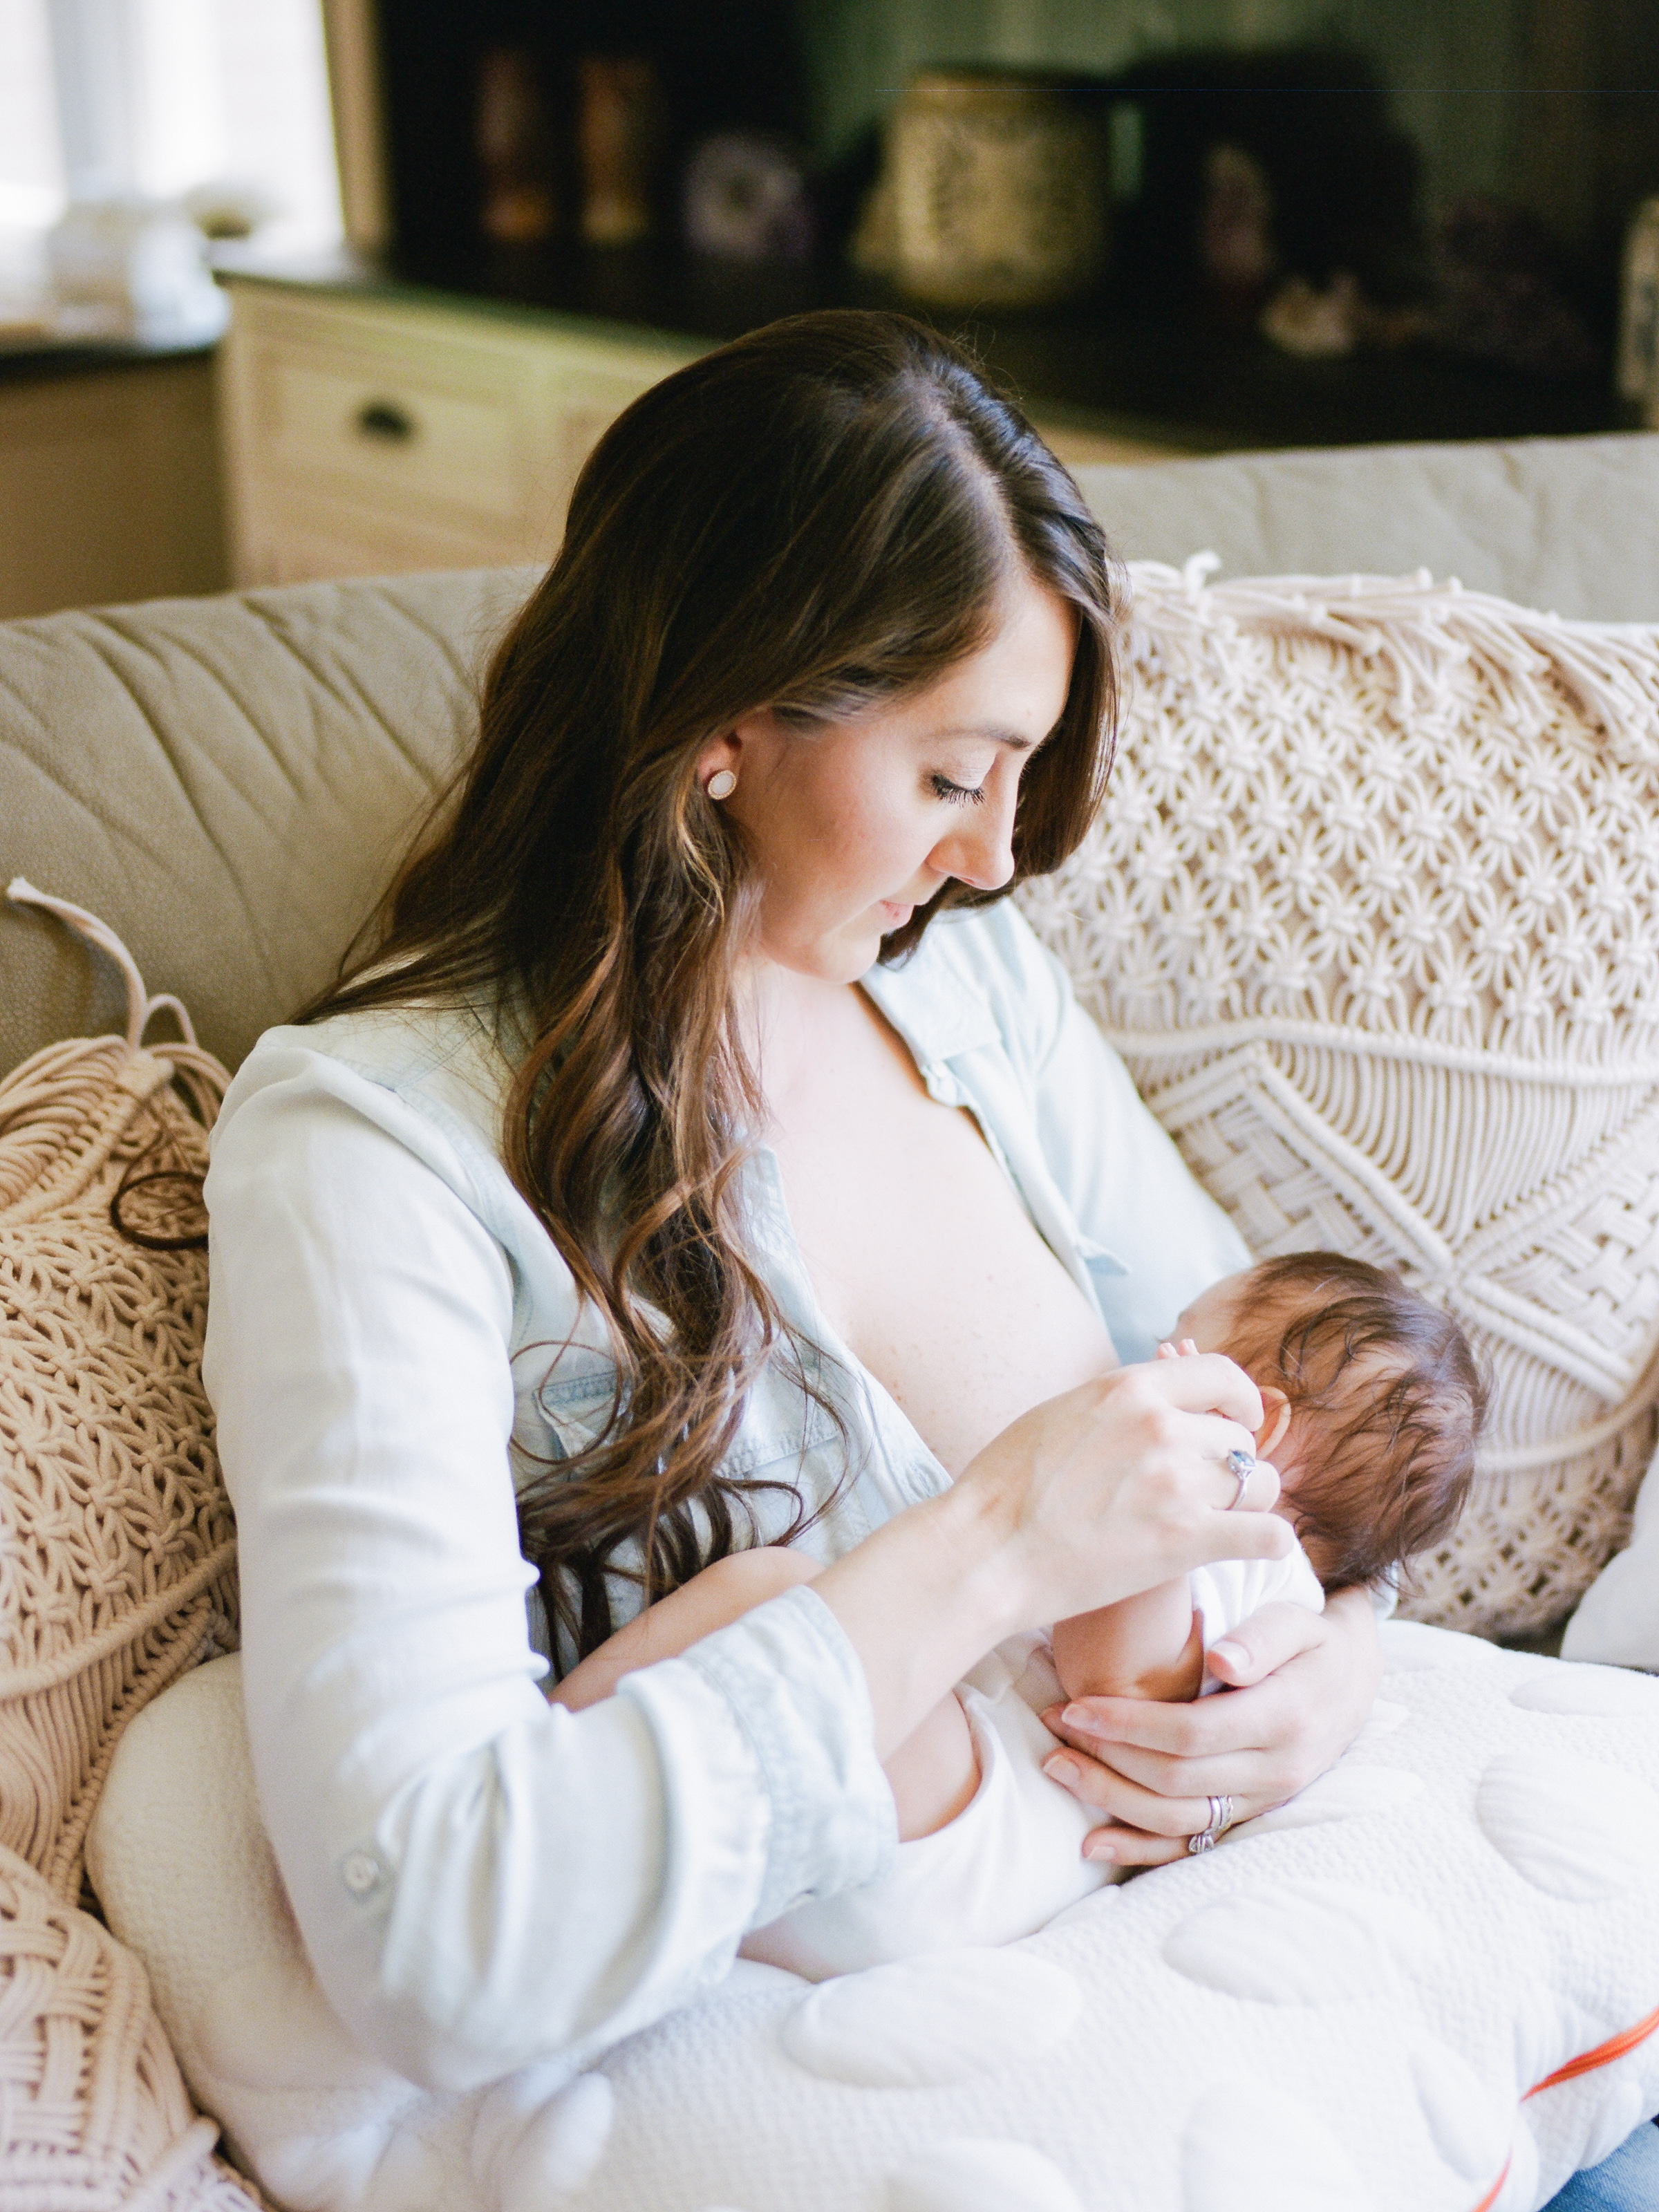 It is difficult to breastfed to begin with, but even harder after a c-section. Here are 6 tips for successful breastfeeding after a c-section.